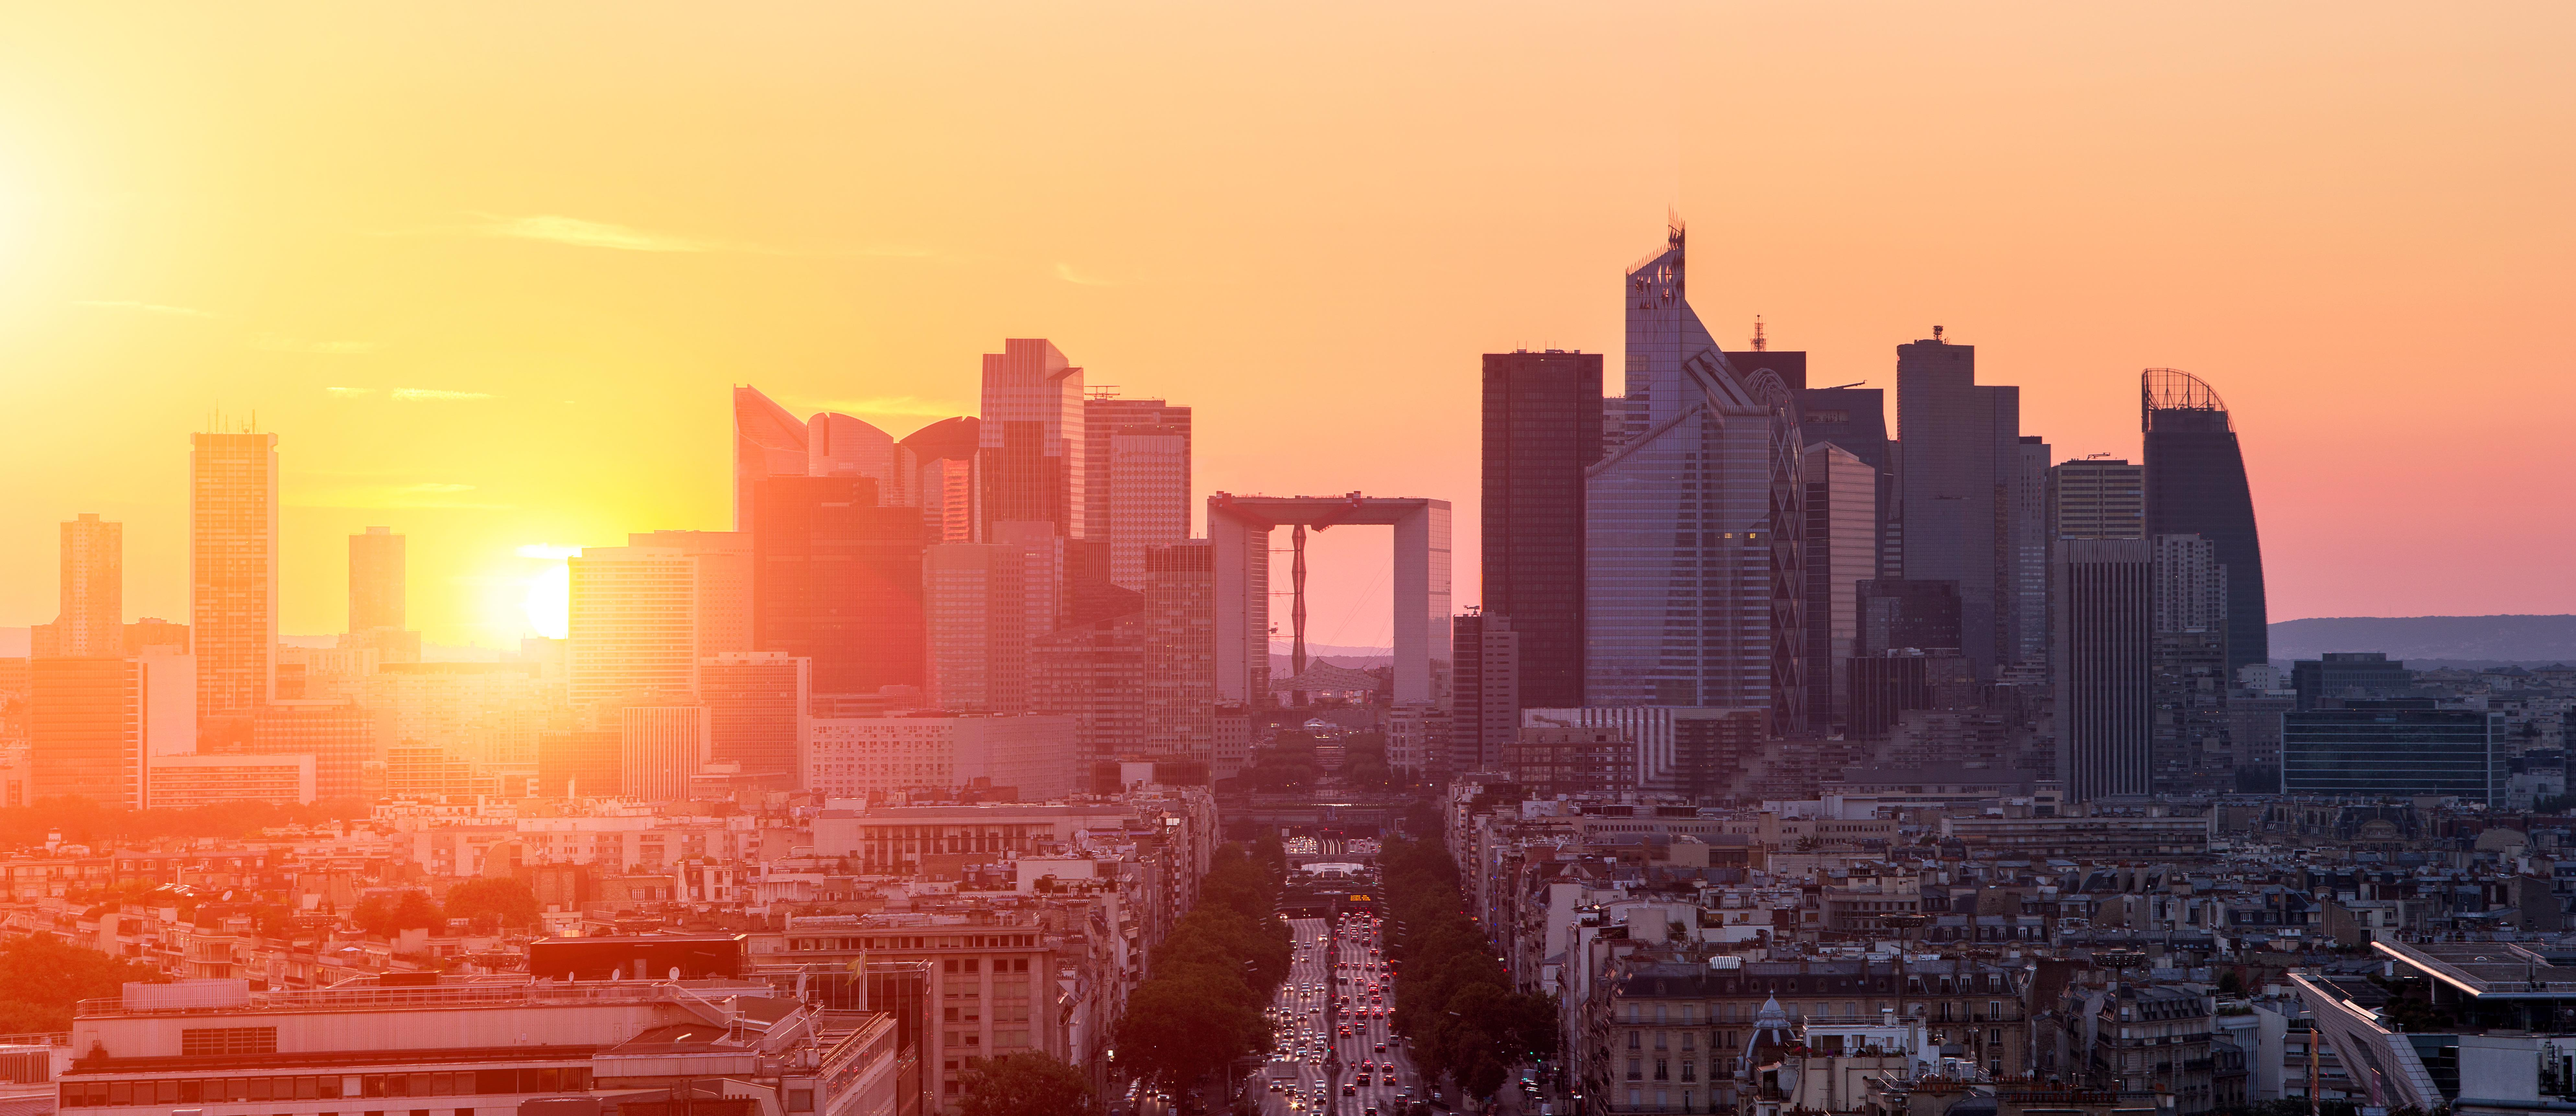 View of La defense district business in Paris at sunset, view from arc de triomphe